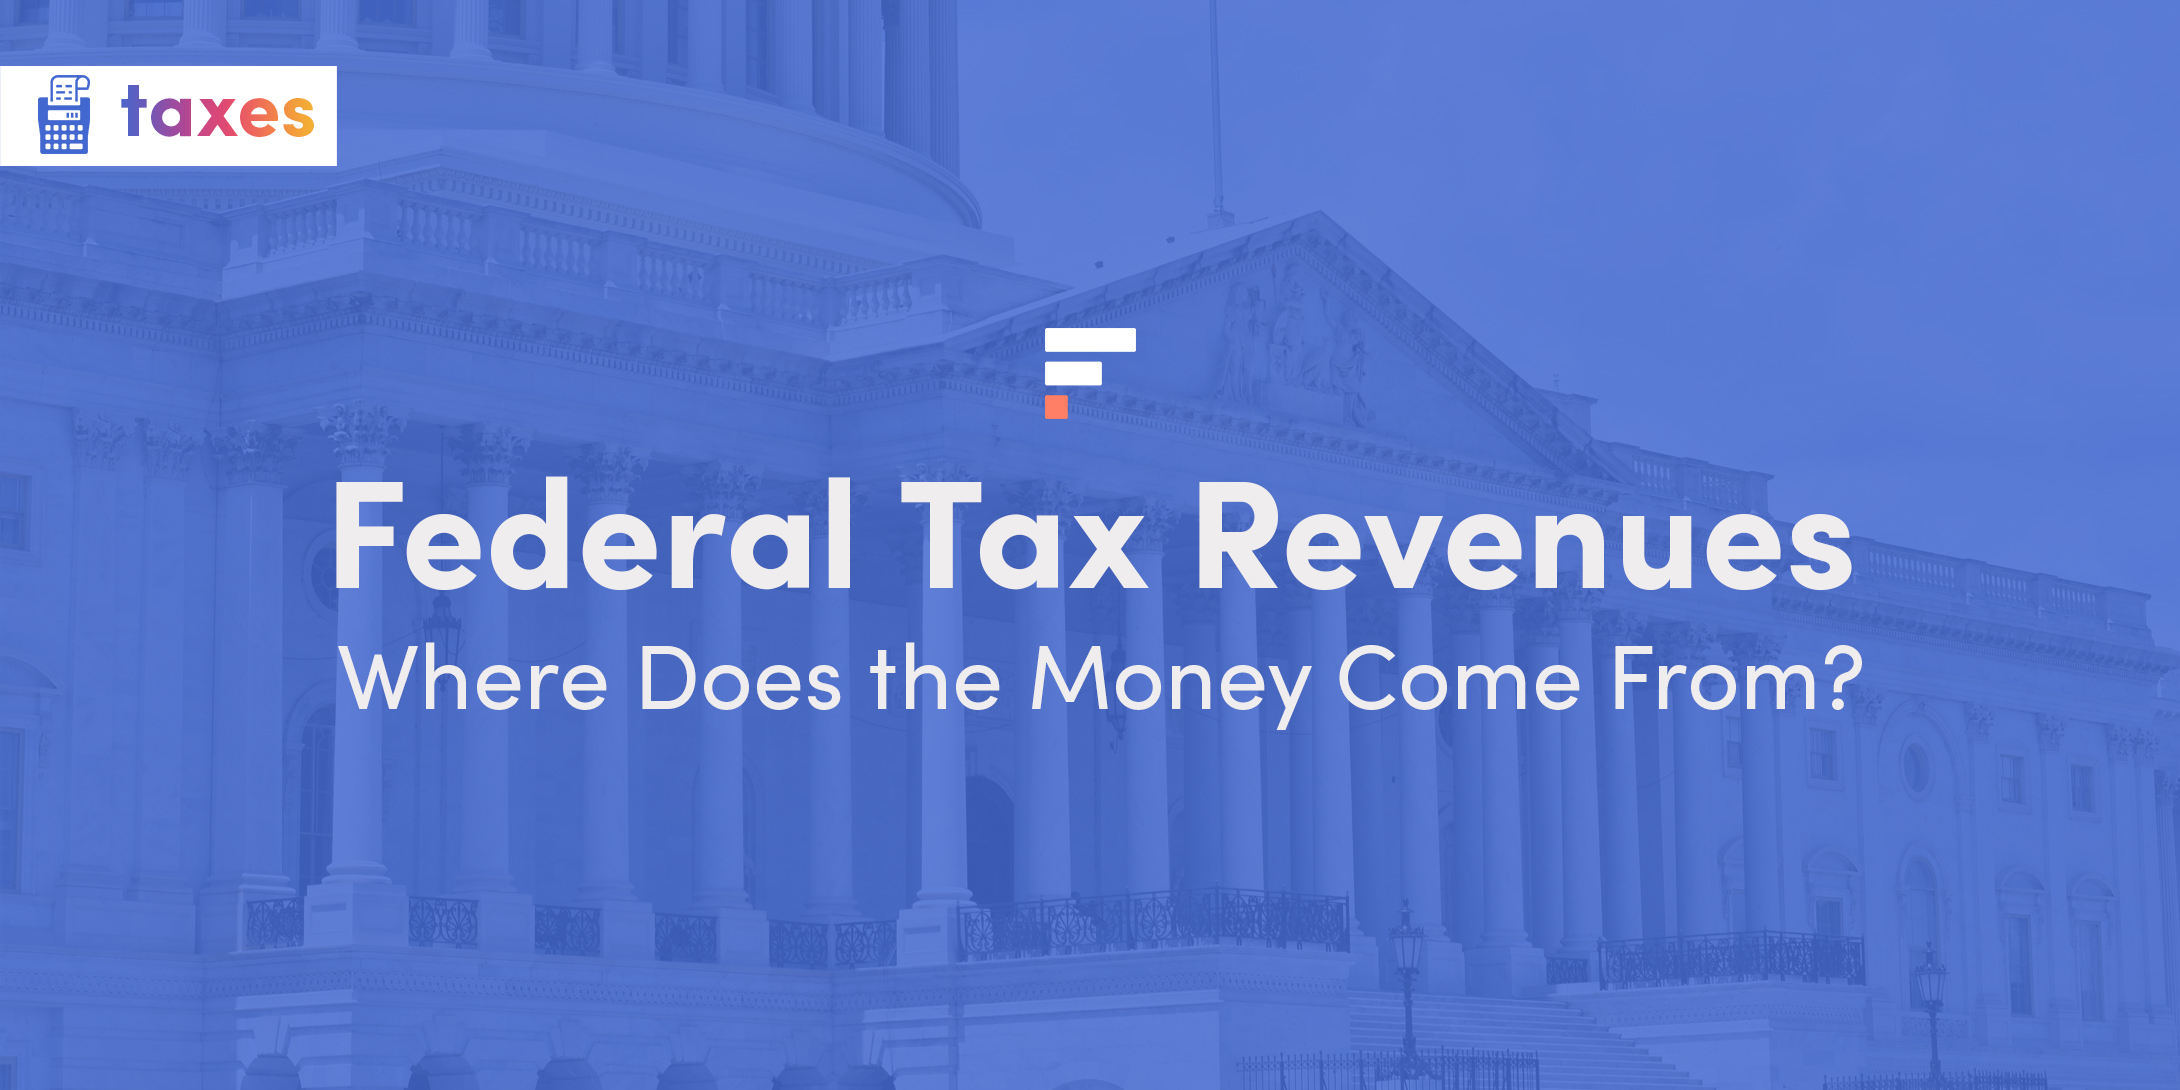 Federal Tax Revenues: Where Does the Money Come From?